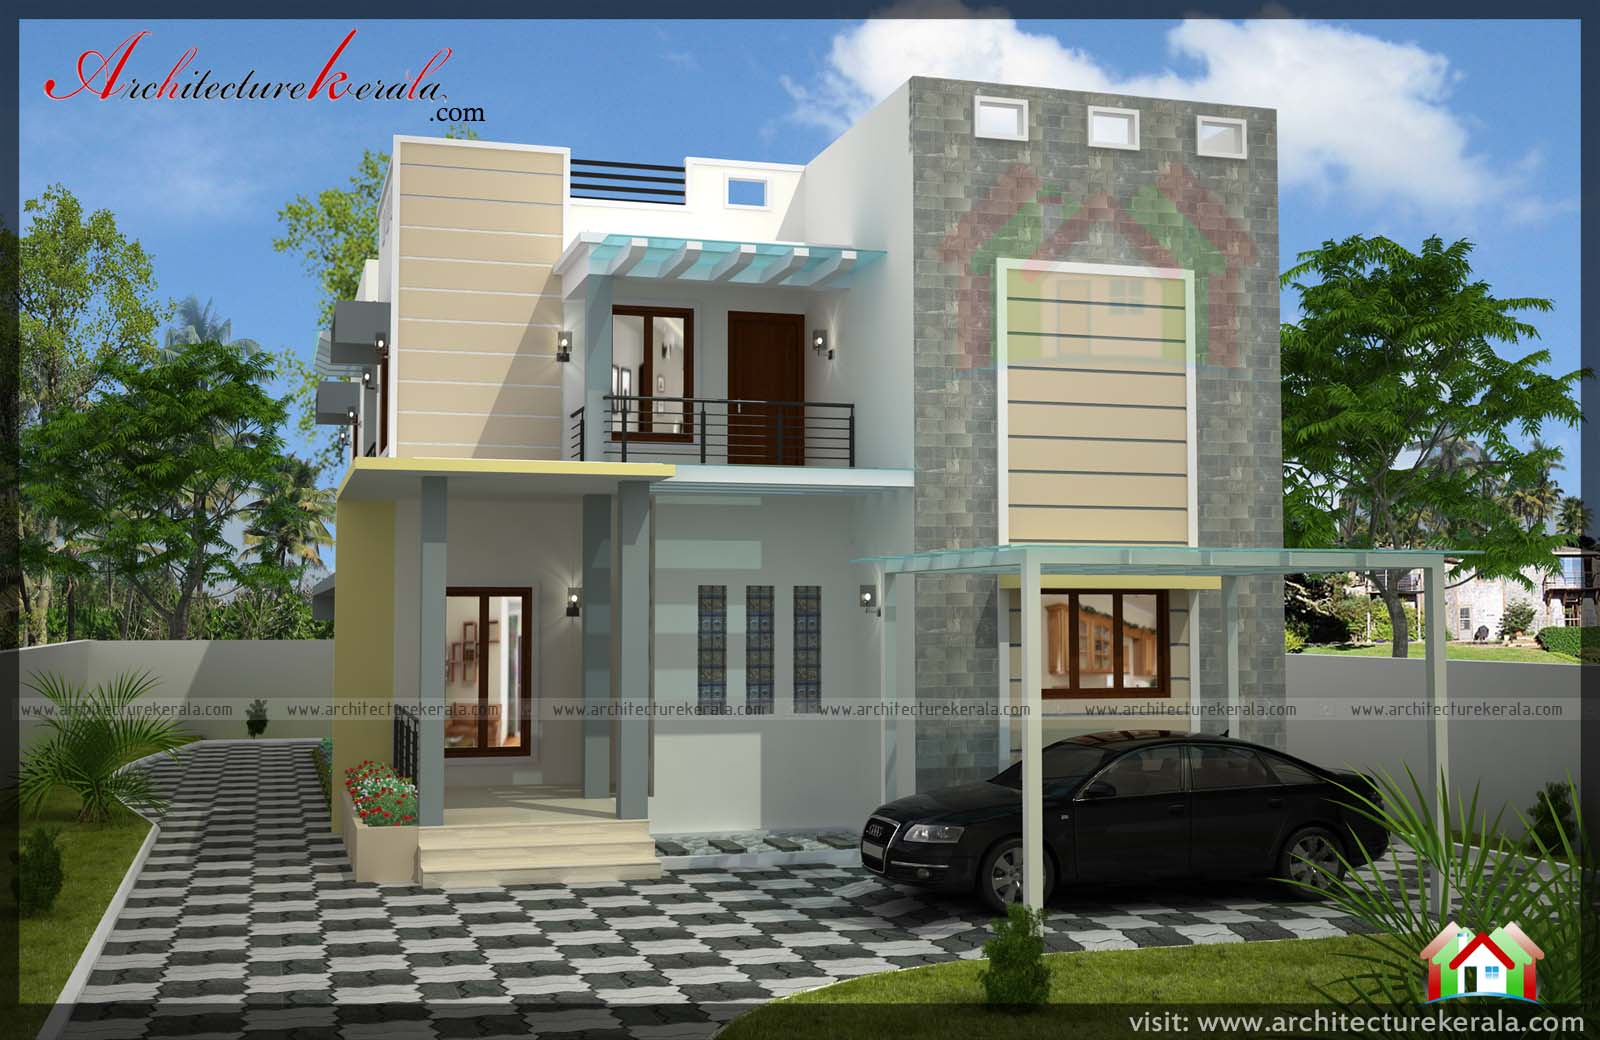 architecture%2Bkerala%2B265 - 27+ 4 Bedroom Small House Design Pics